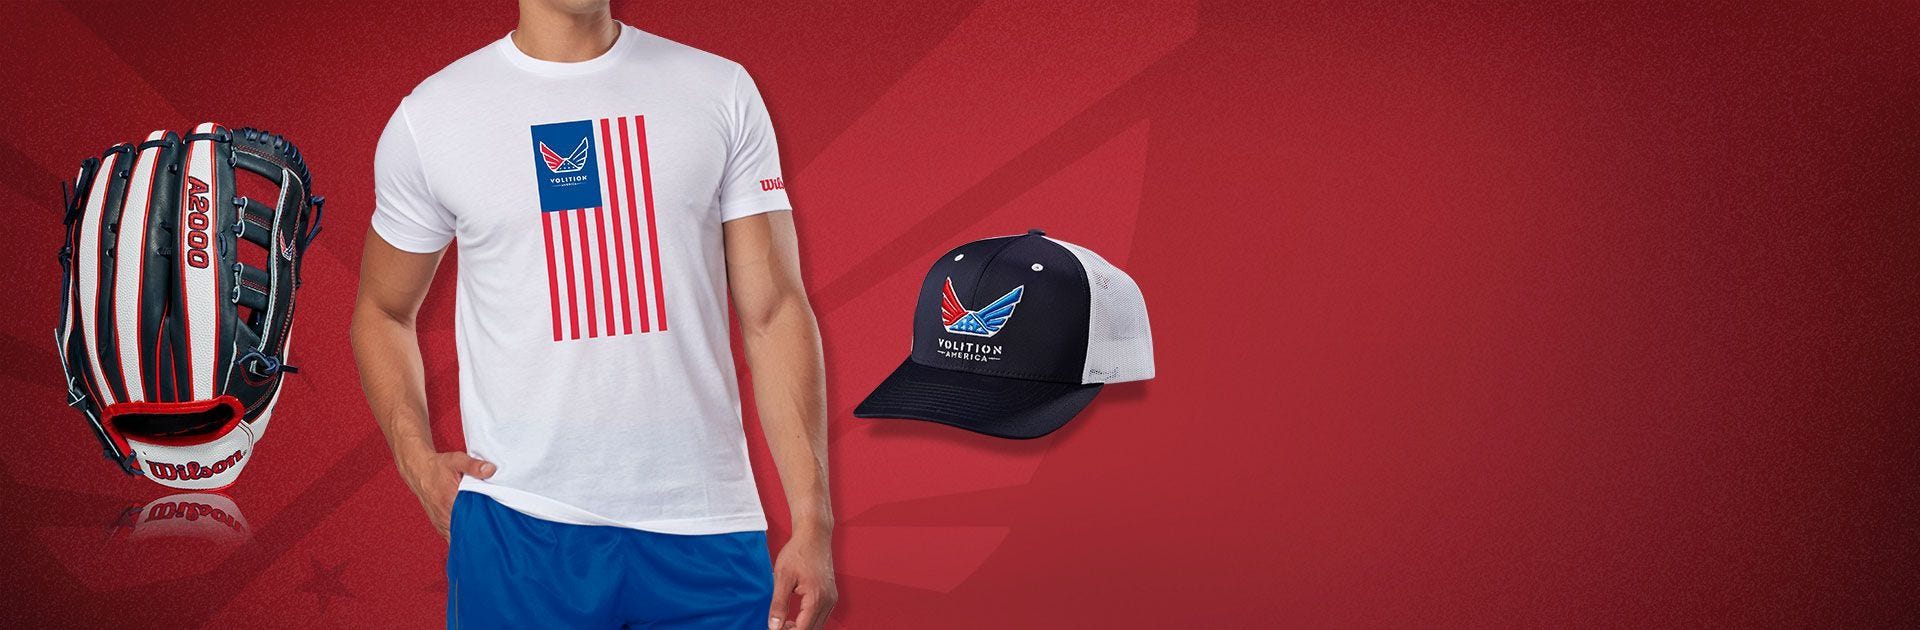 Wilson and Volition America collab softball gloves, shirt, and hat